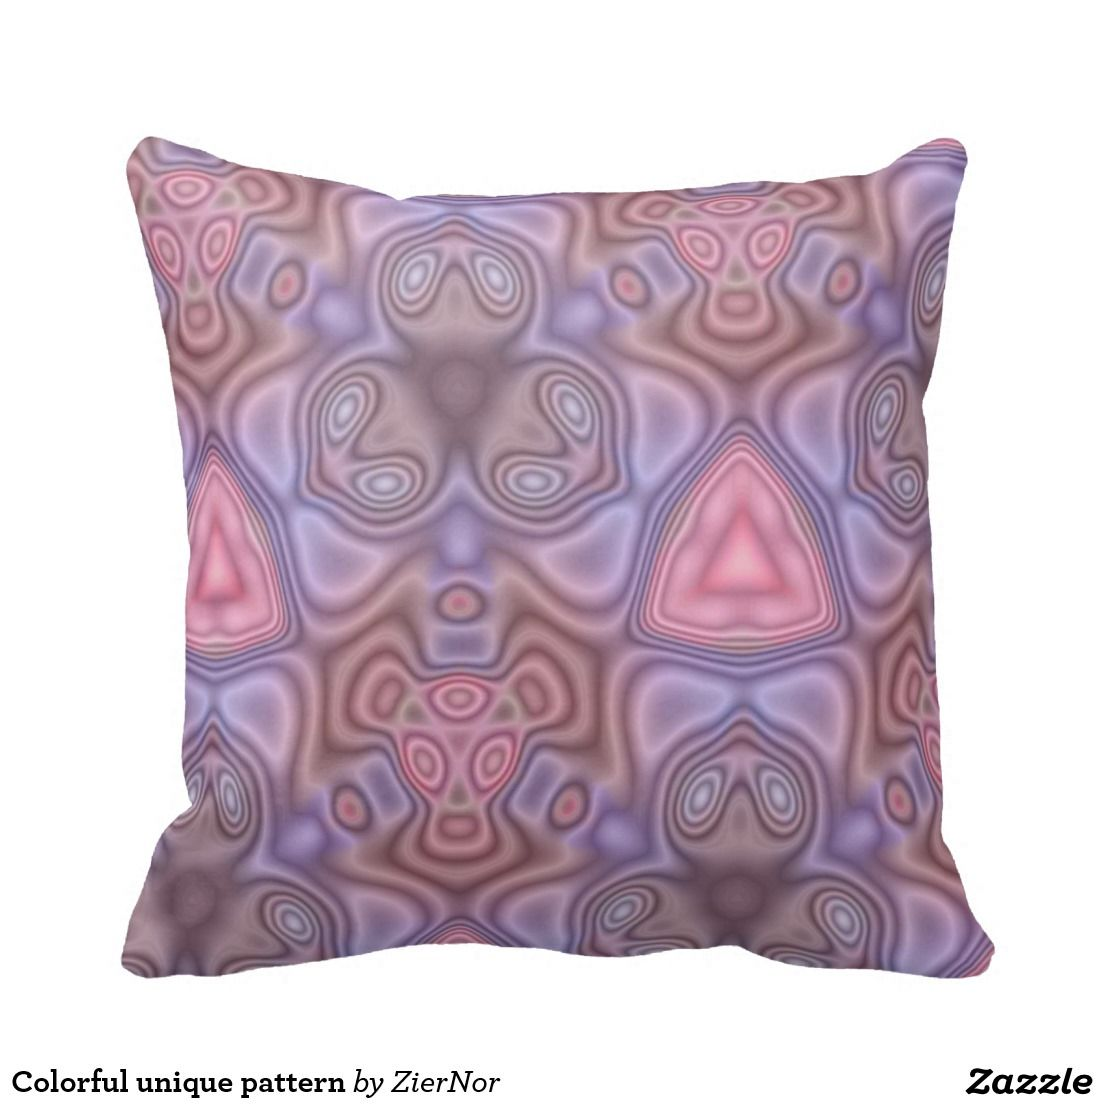 Colorful unique pattern pillows